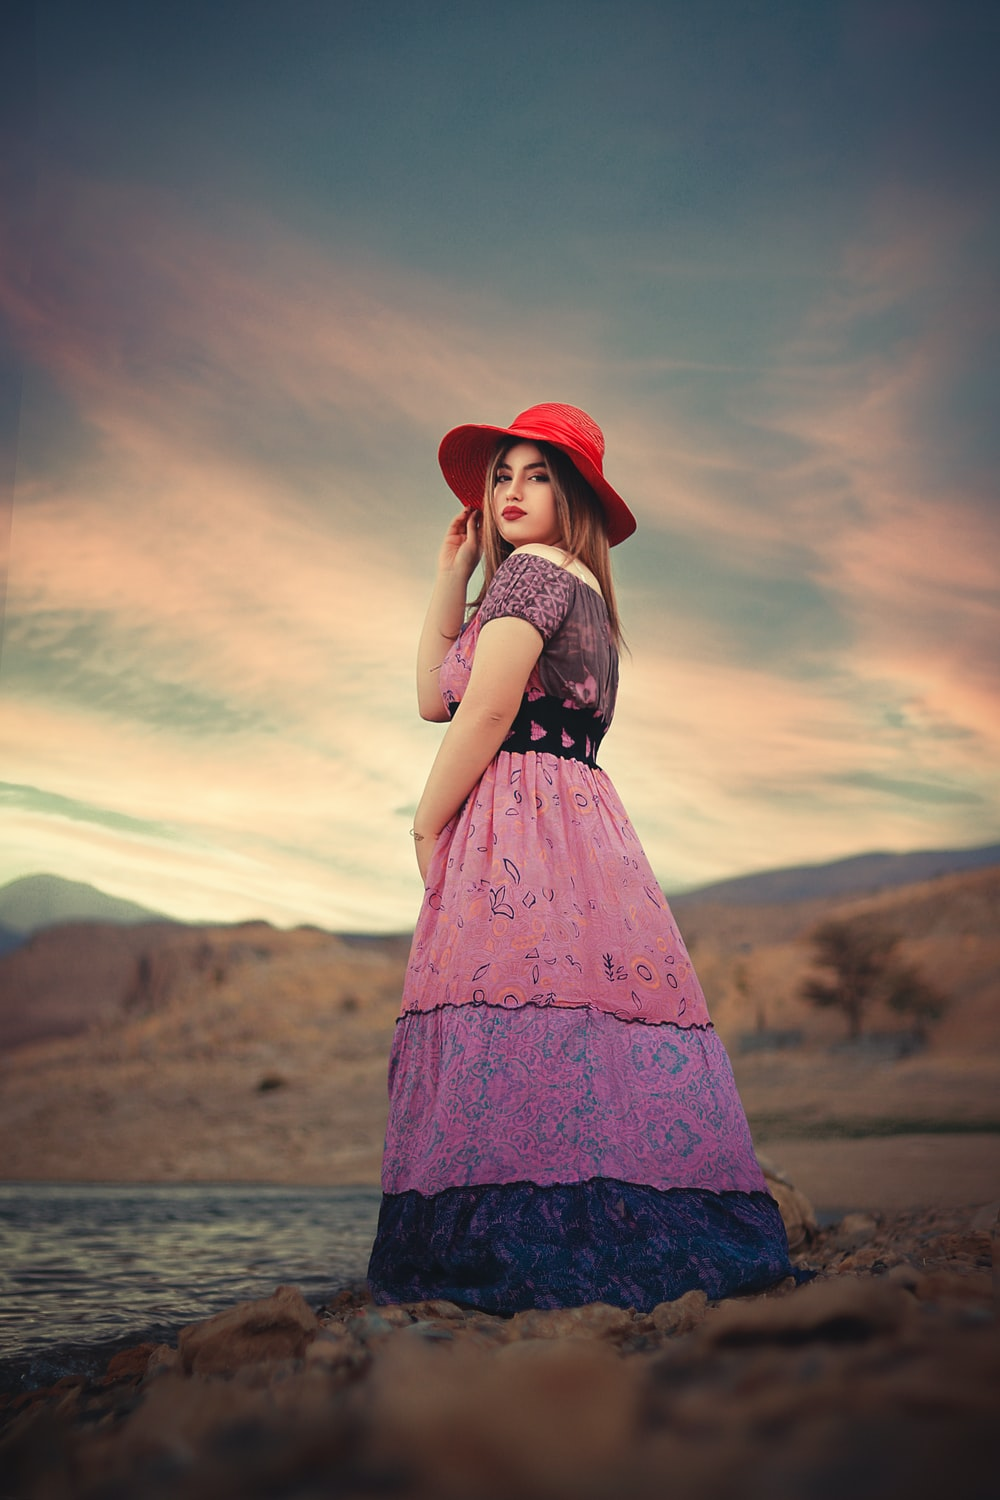 woman in red hat and black and white dress standing on brown field during sunset